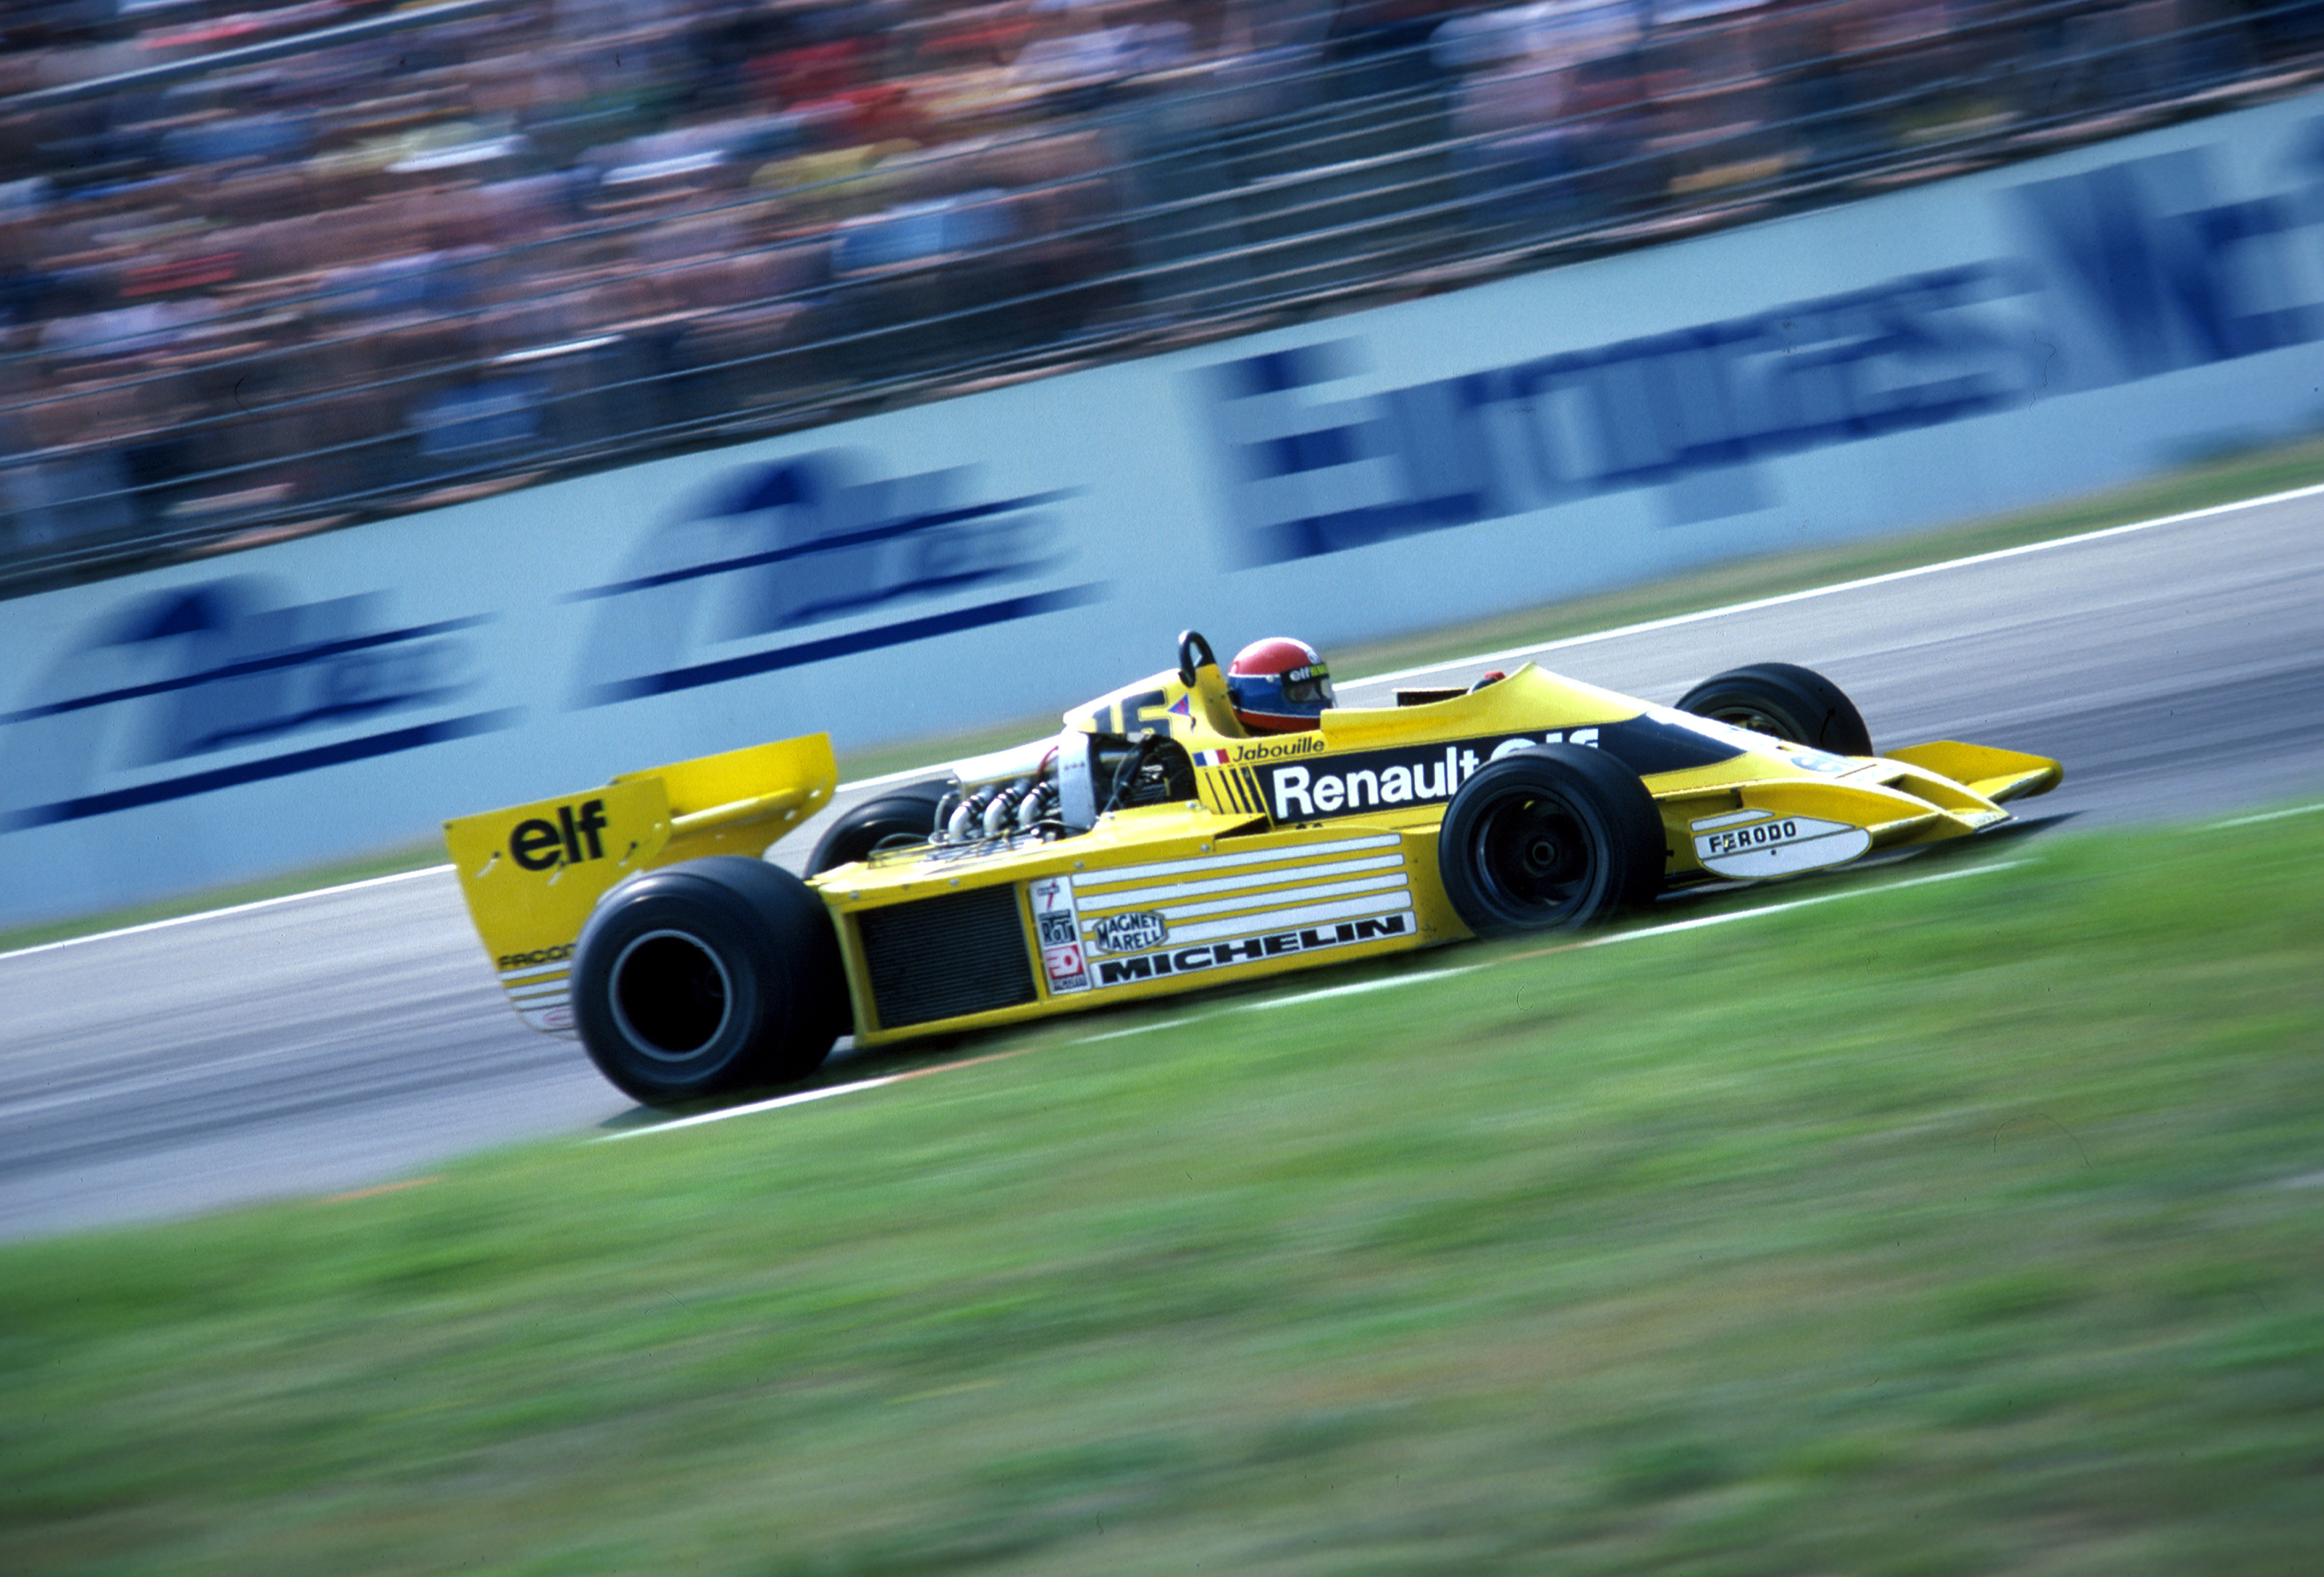 1978 hockenheim jean pierre HD Wallpaper